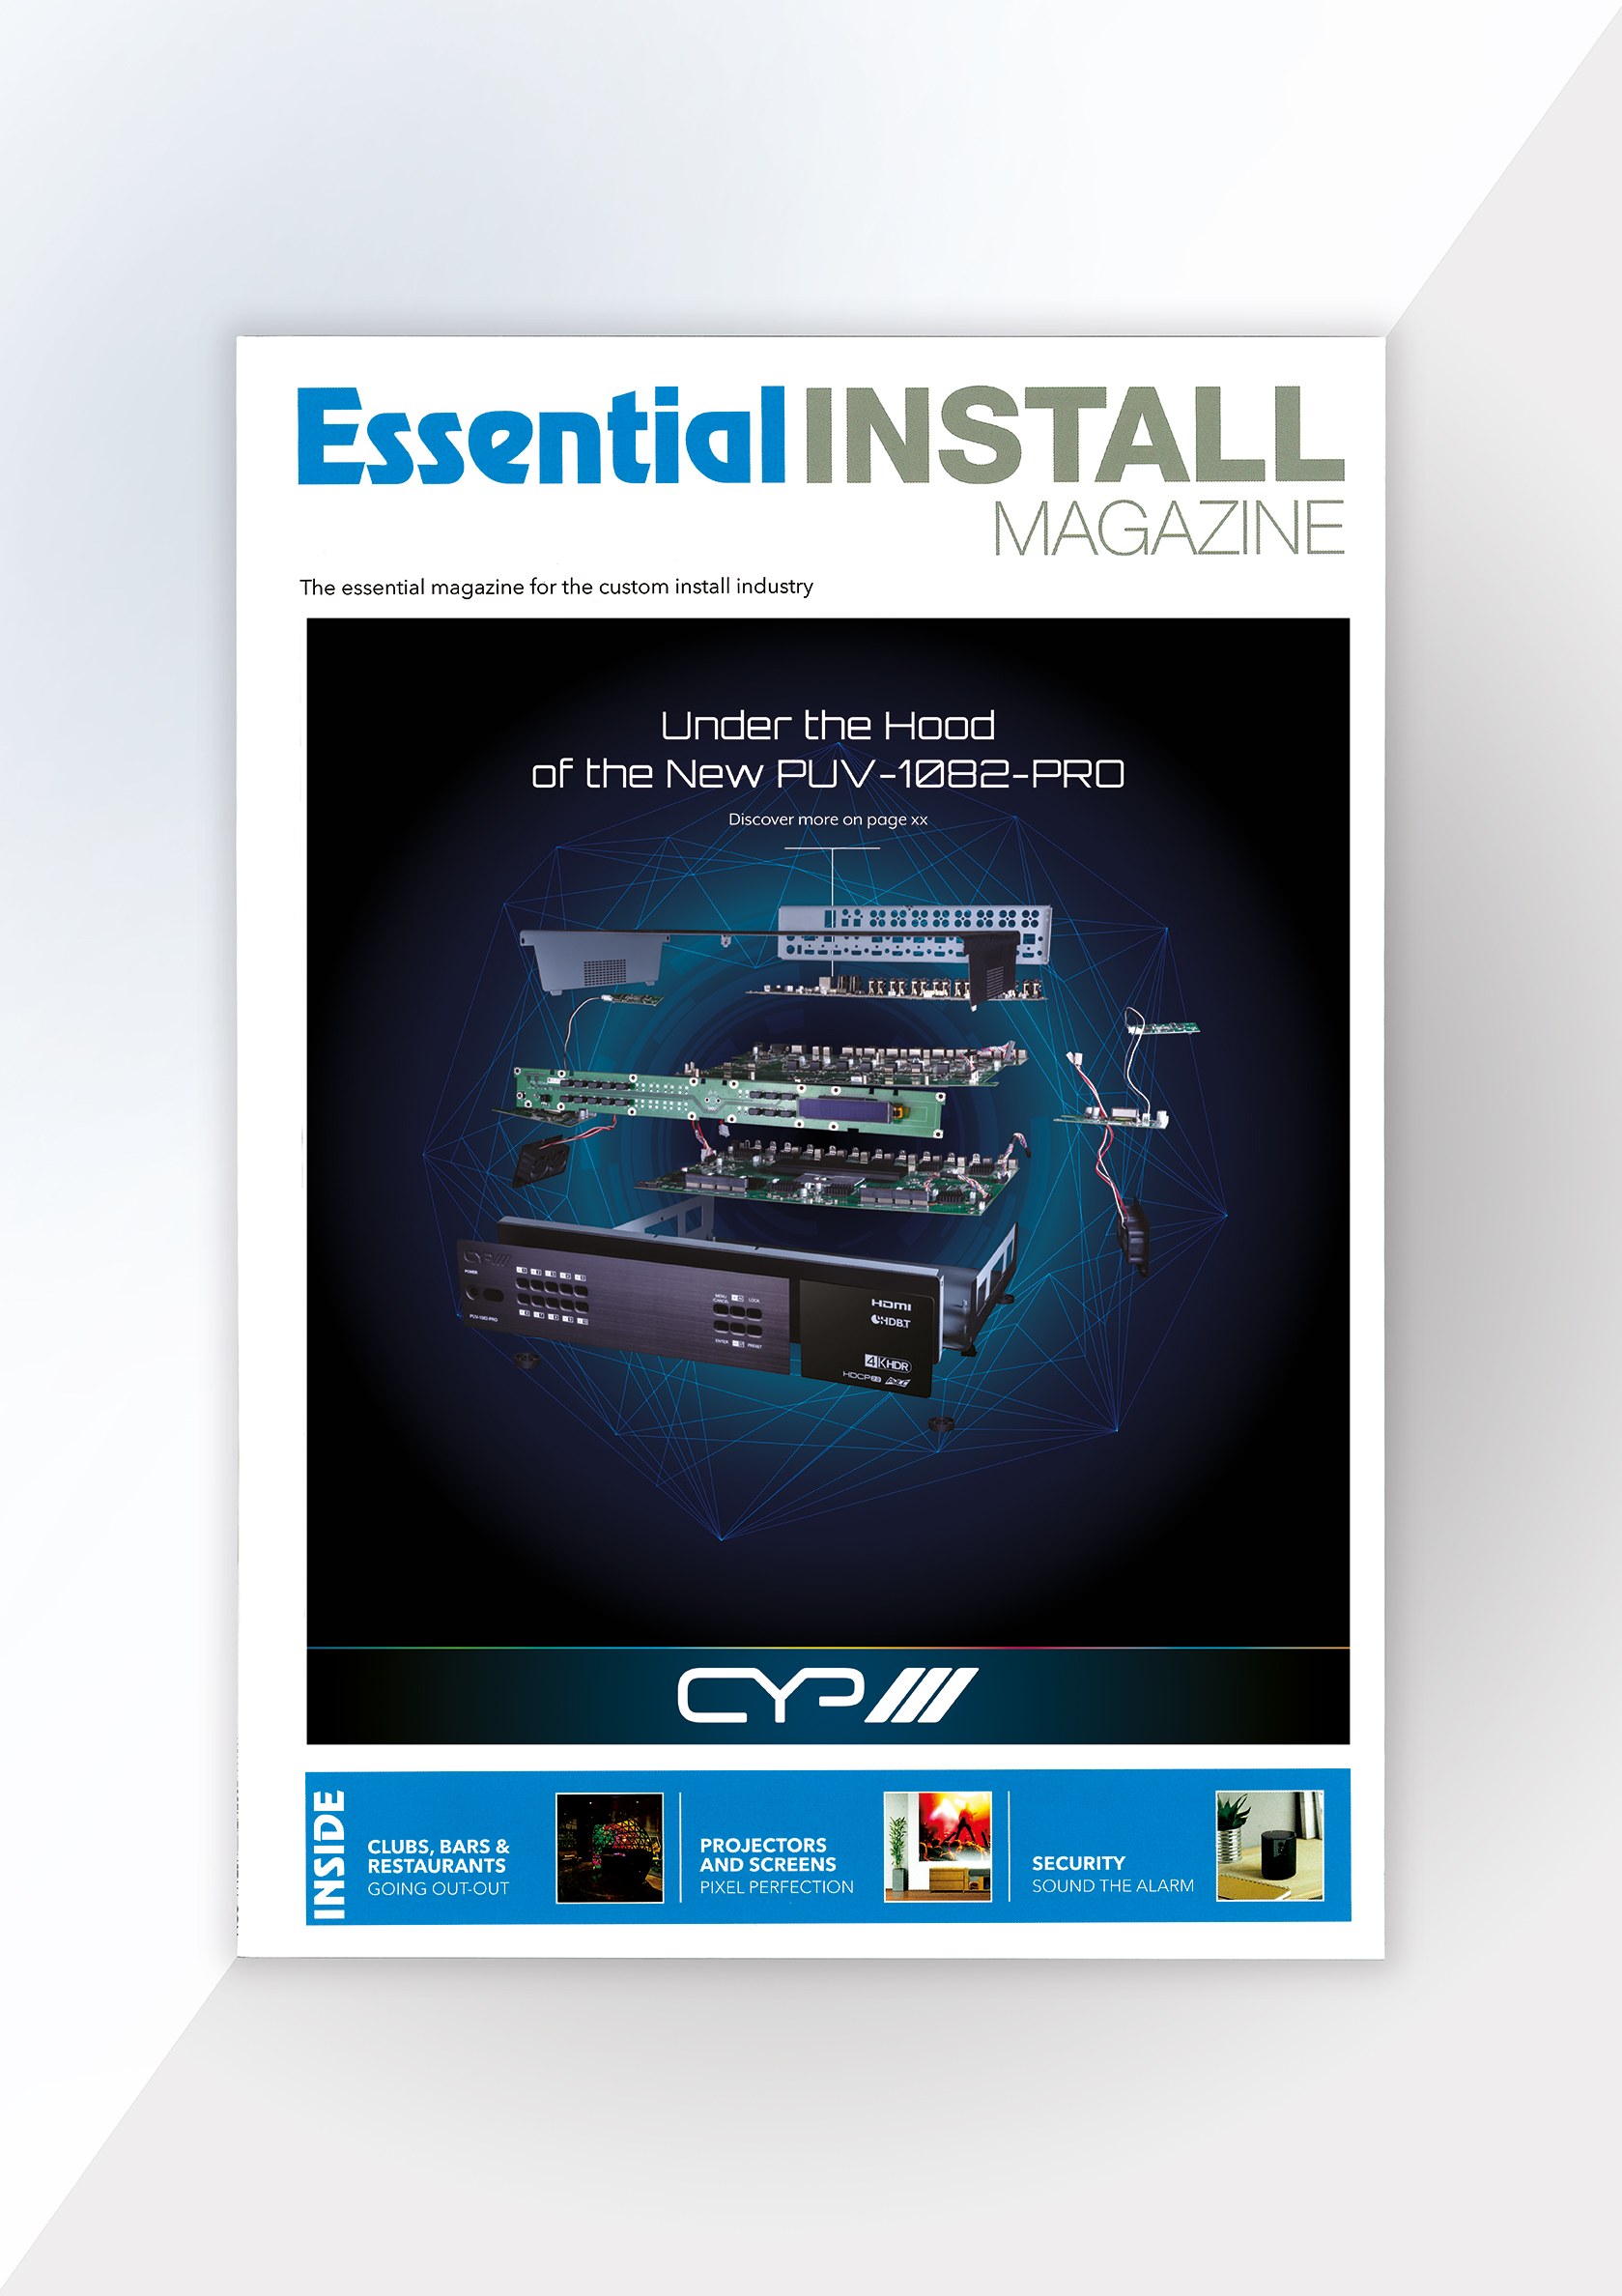 Essential Install front cover (PROOF)_mockup MARCH 2019